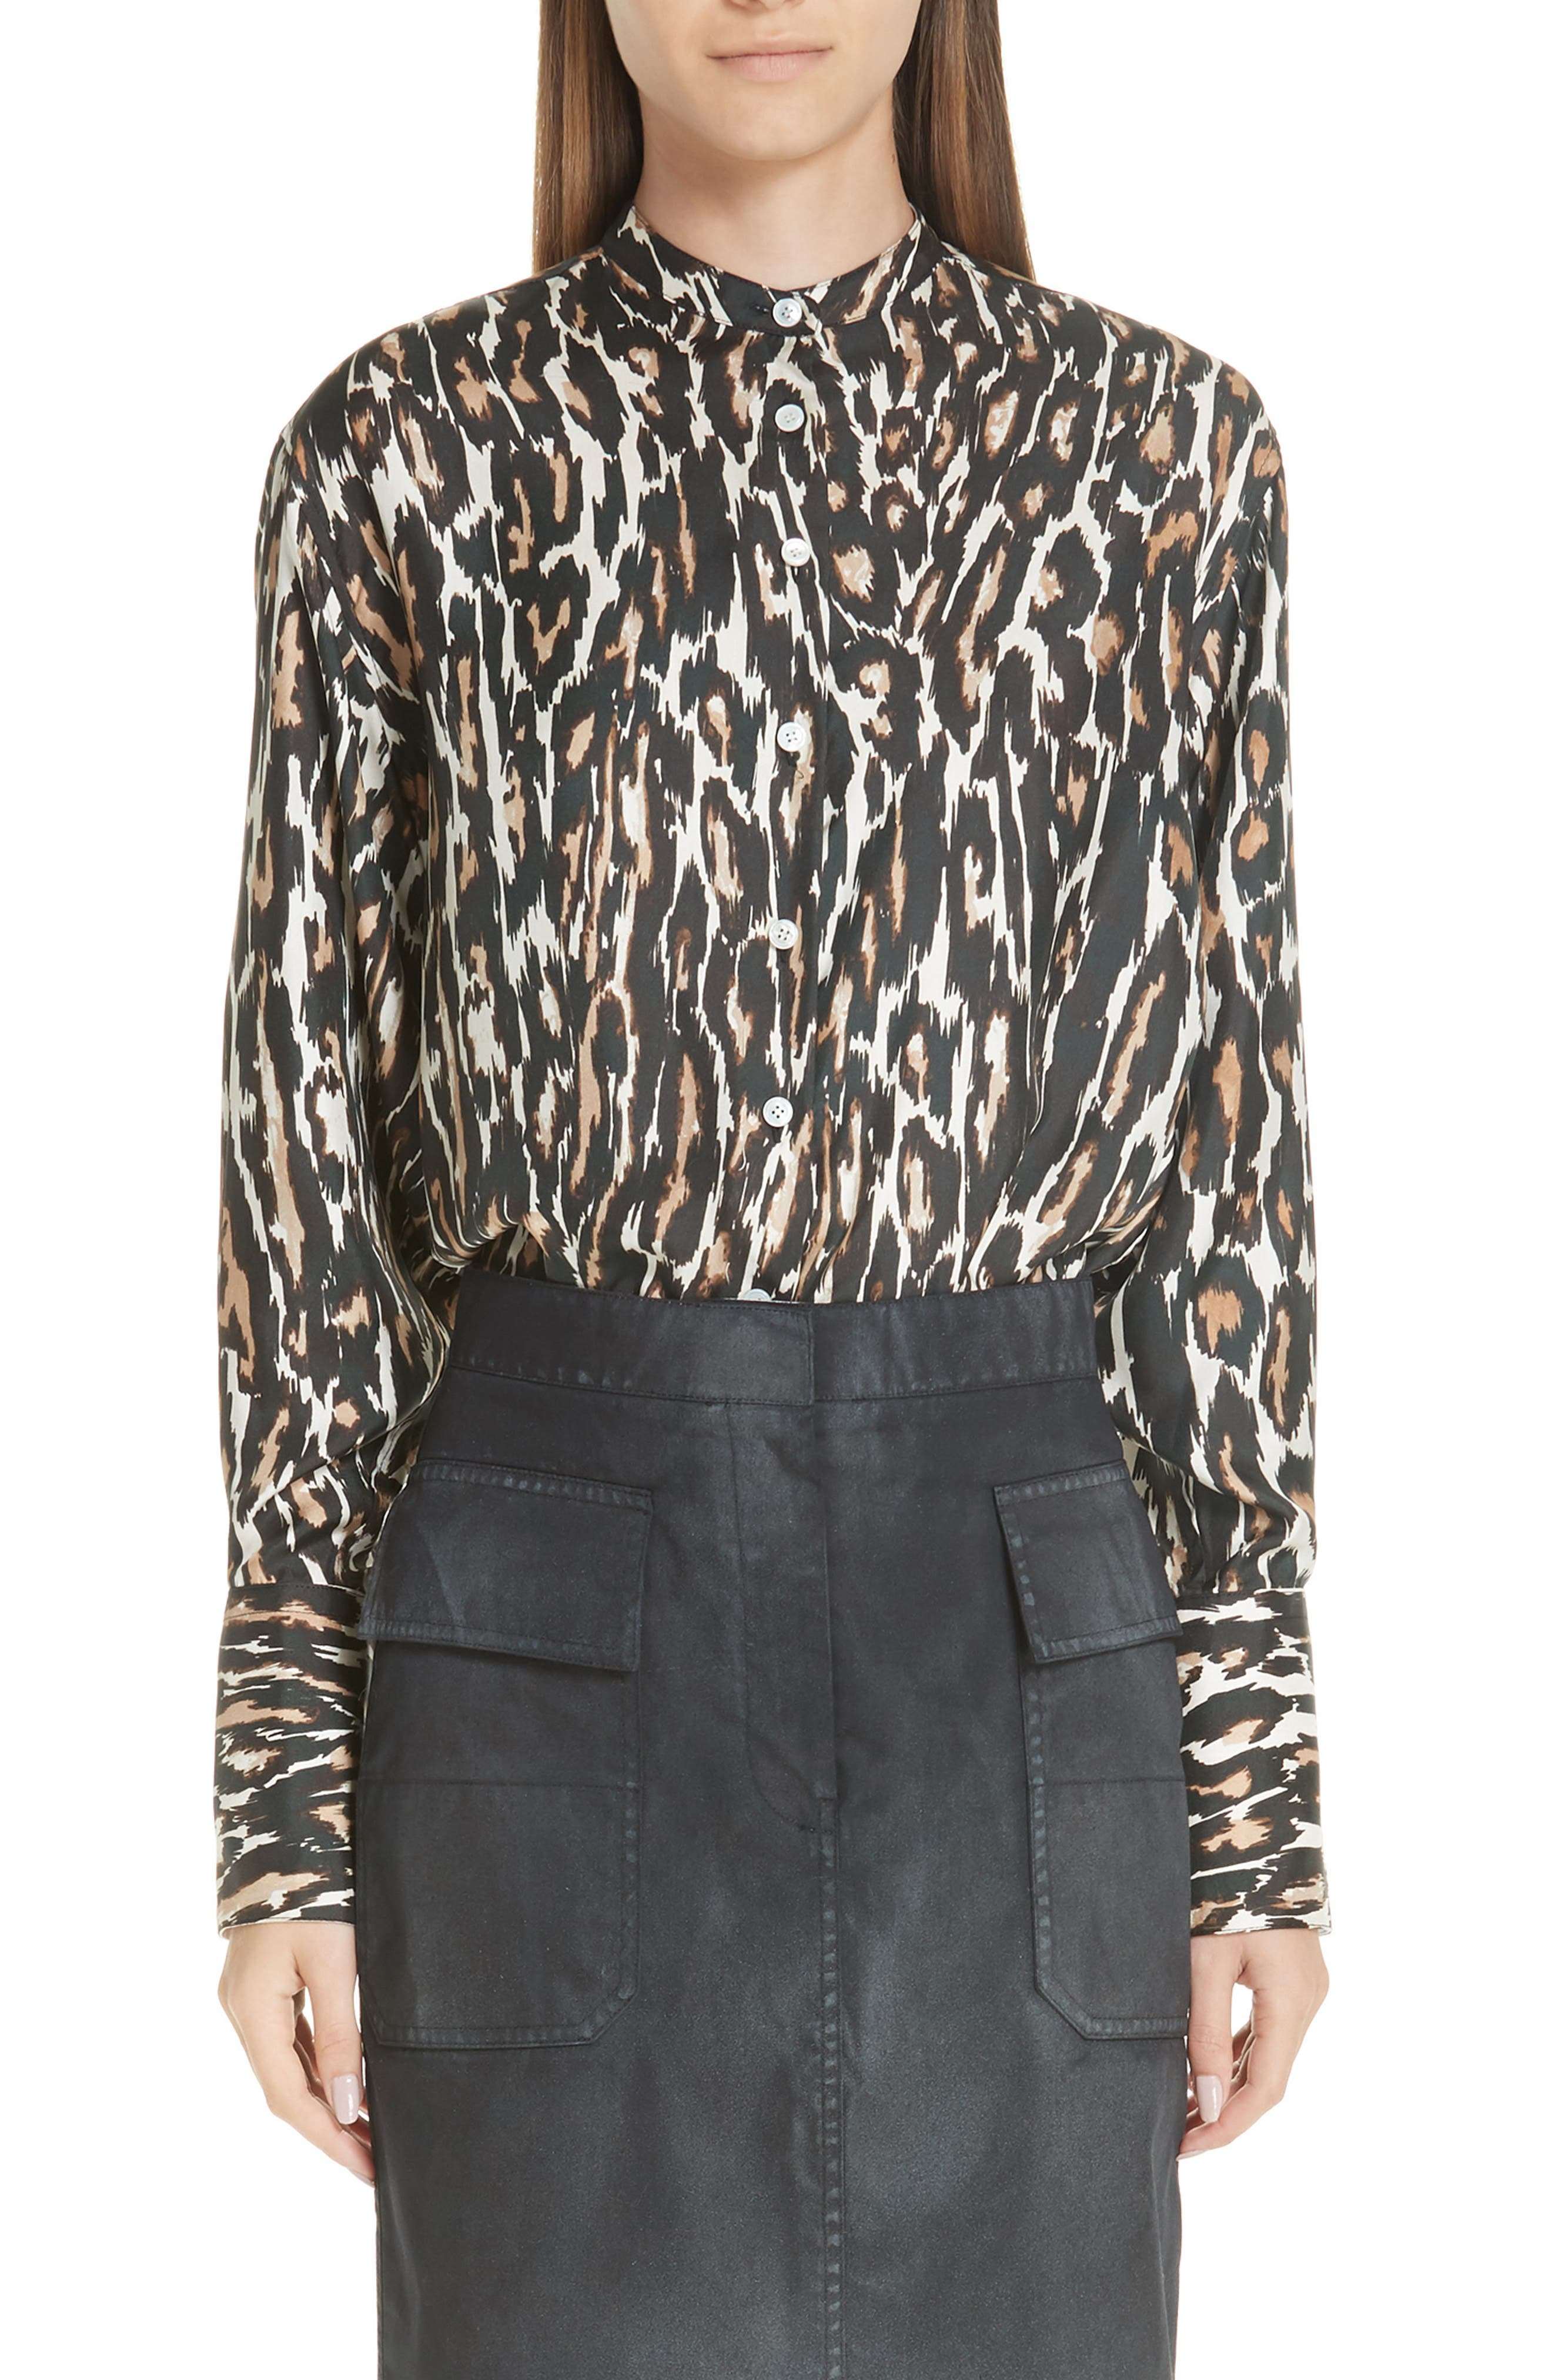 Leopard Print Silk Twill Blouse,                             Main thumbnail 1, color,                             IVORY BROWN BLACK BEIGE